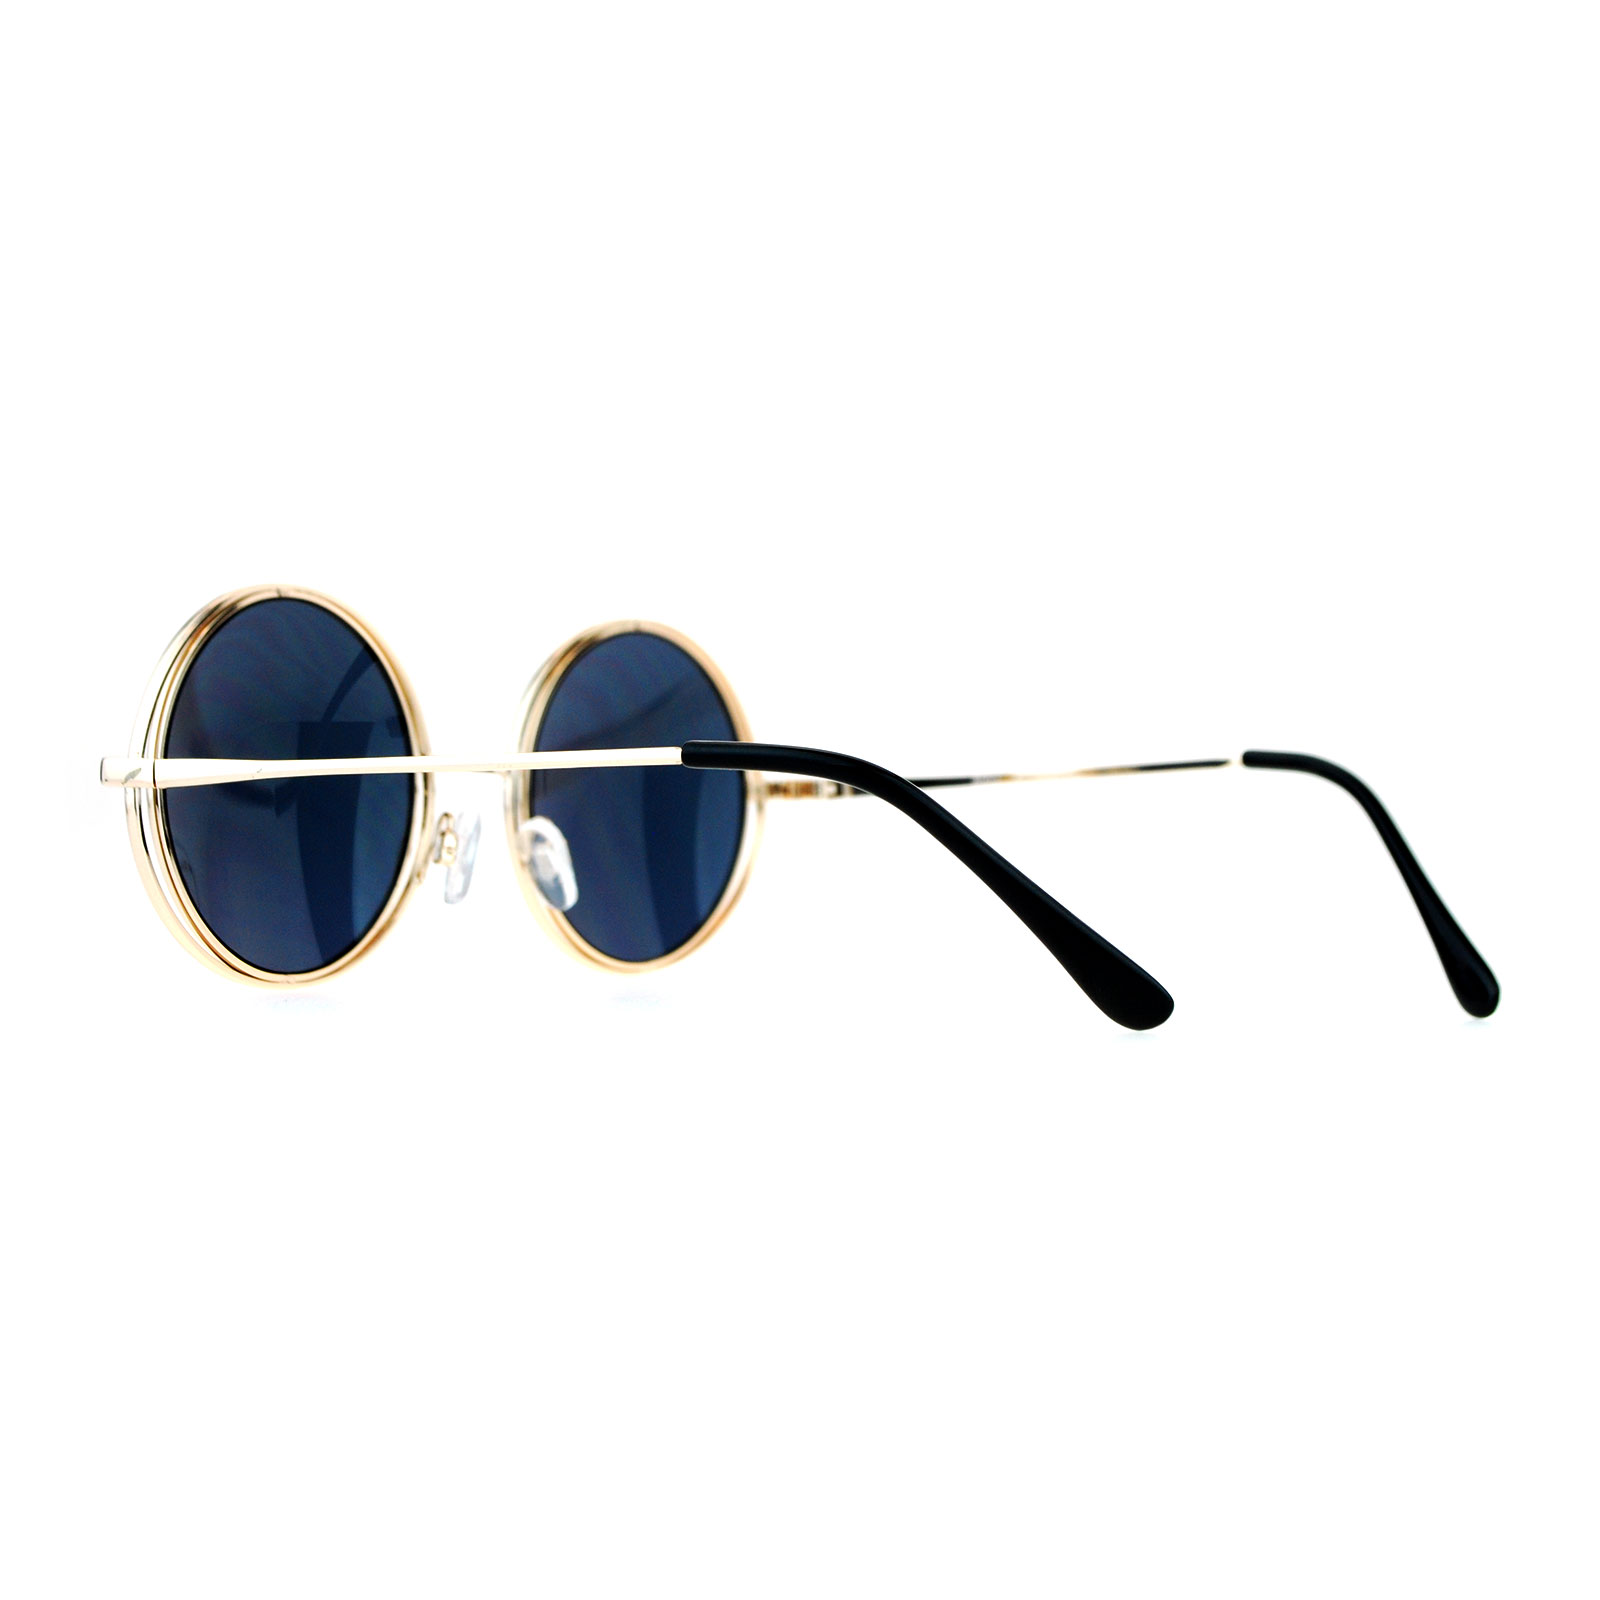 21aed6a119e SA106 Mirrored Double Round Metal Rim Circle Lens Hippie Sunglasses ...